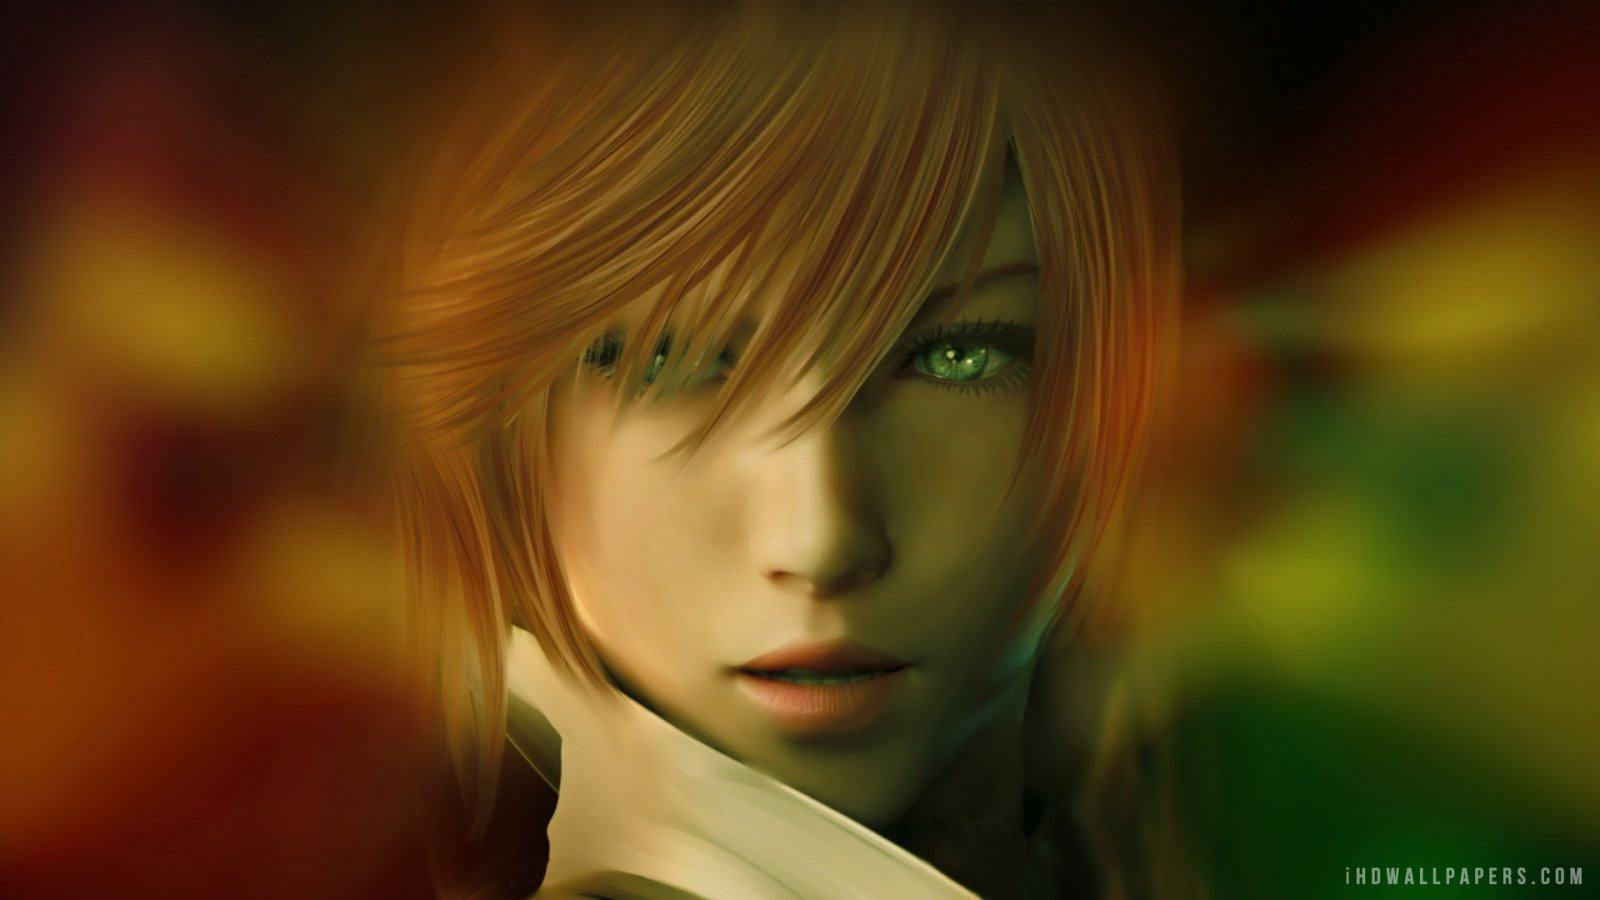 Lightning Final Fantasy XIII HD Wallpaper   iHD Wallpapers 1600x900